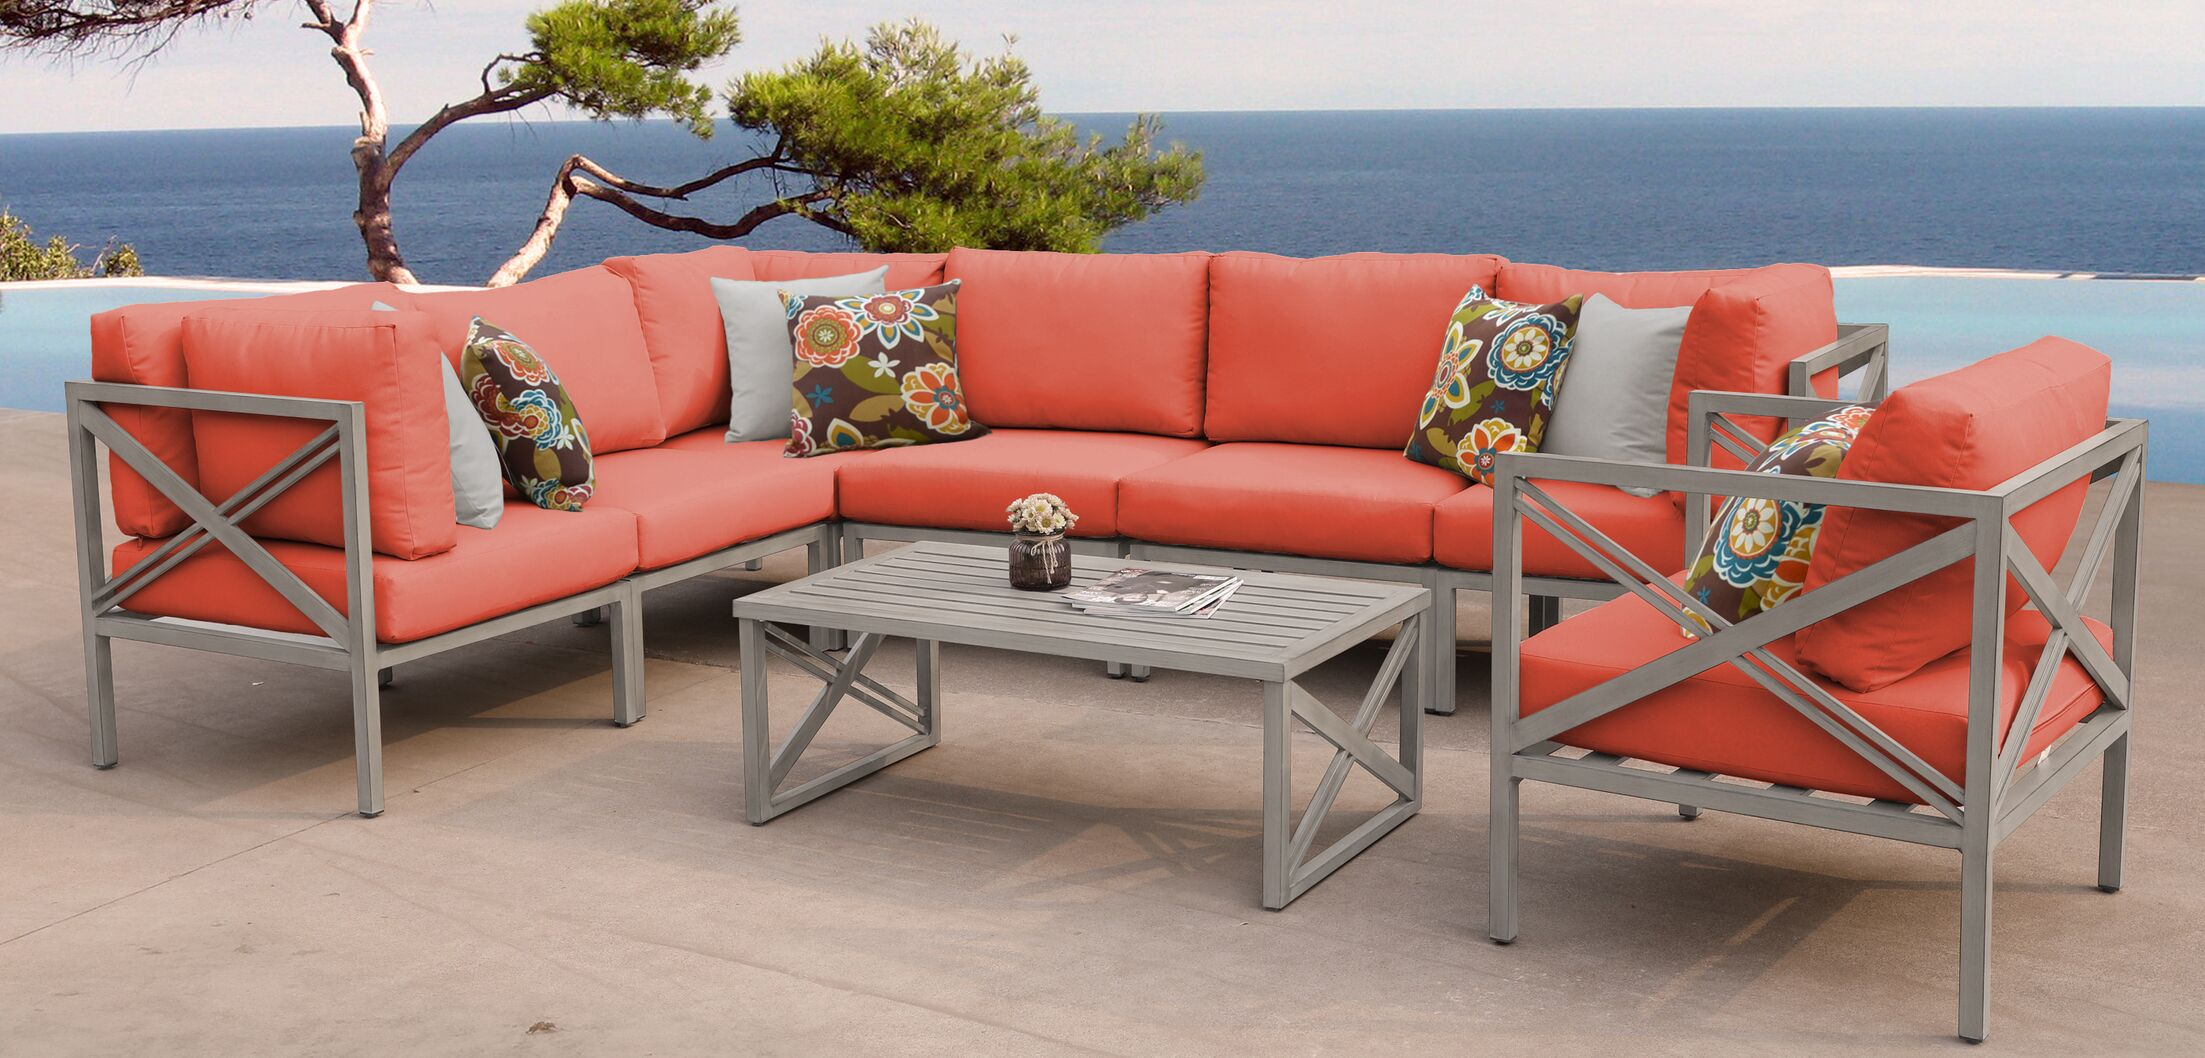 Carlisle 8 Piece Outdoor Sectional Set with Cushions Cushion Color: Tangerine